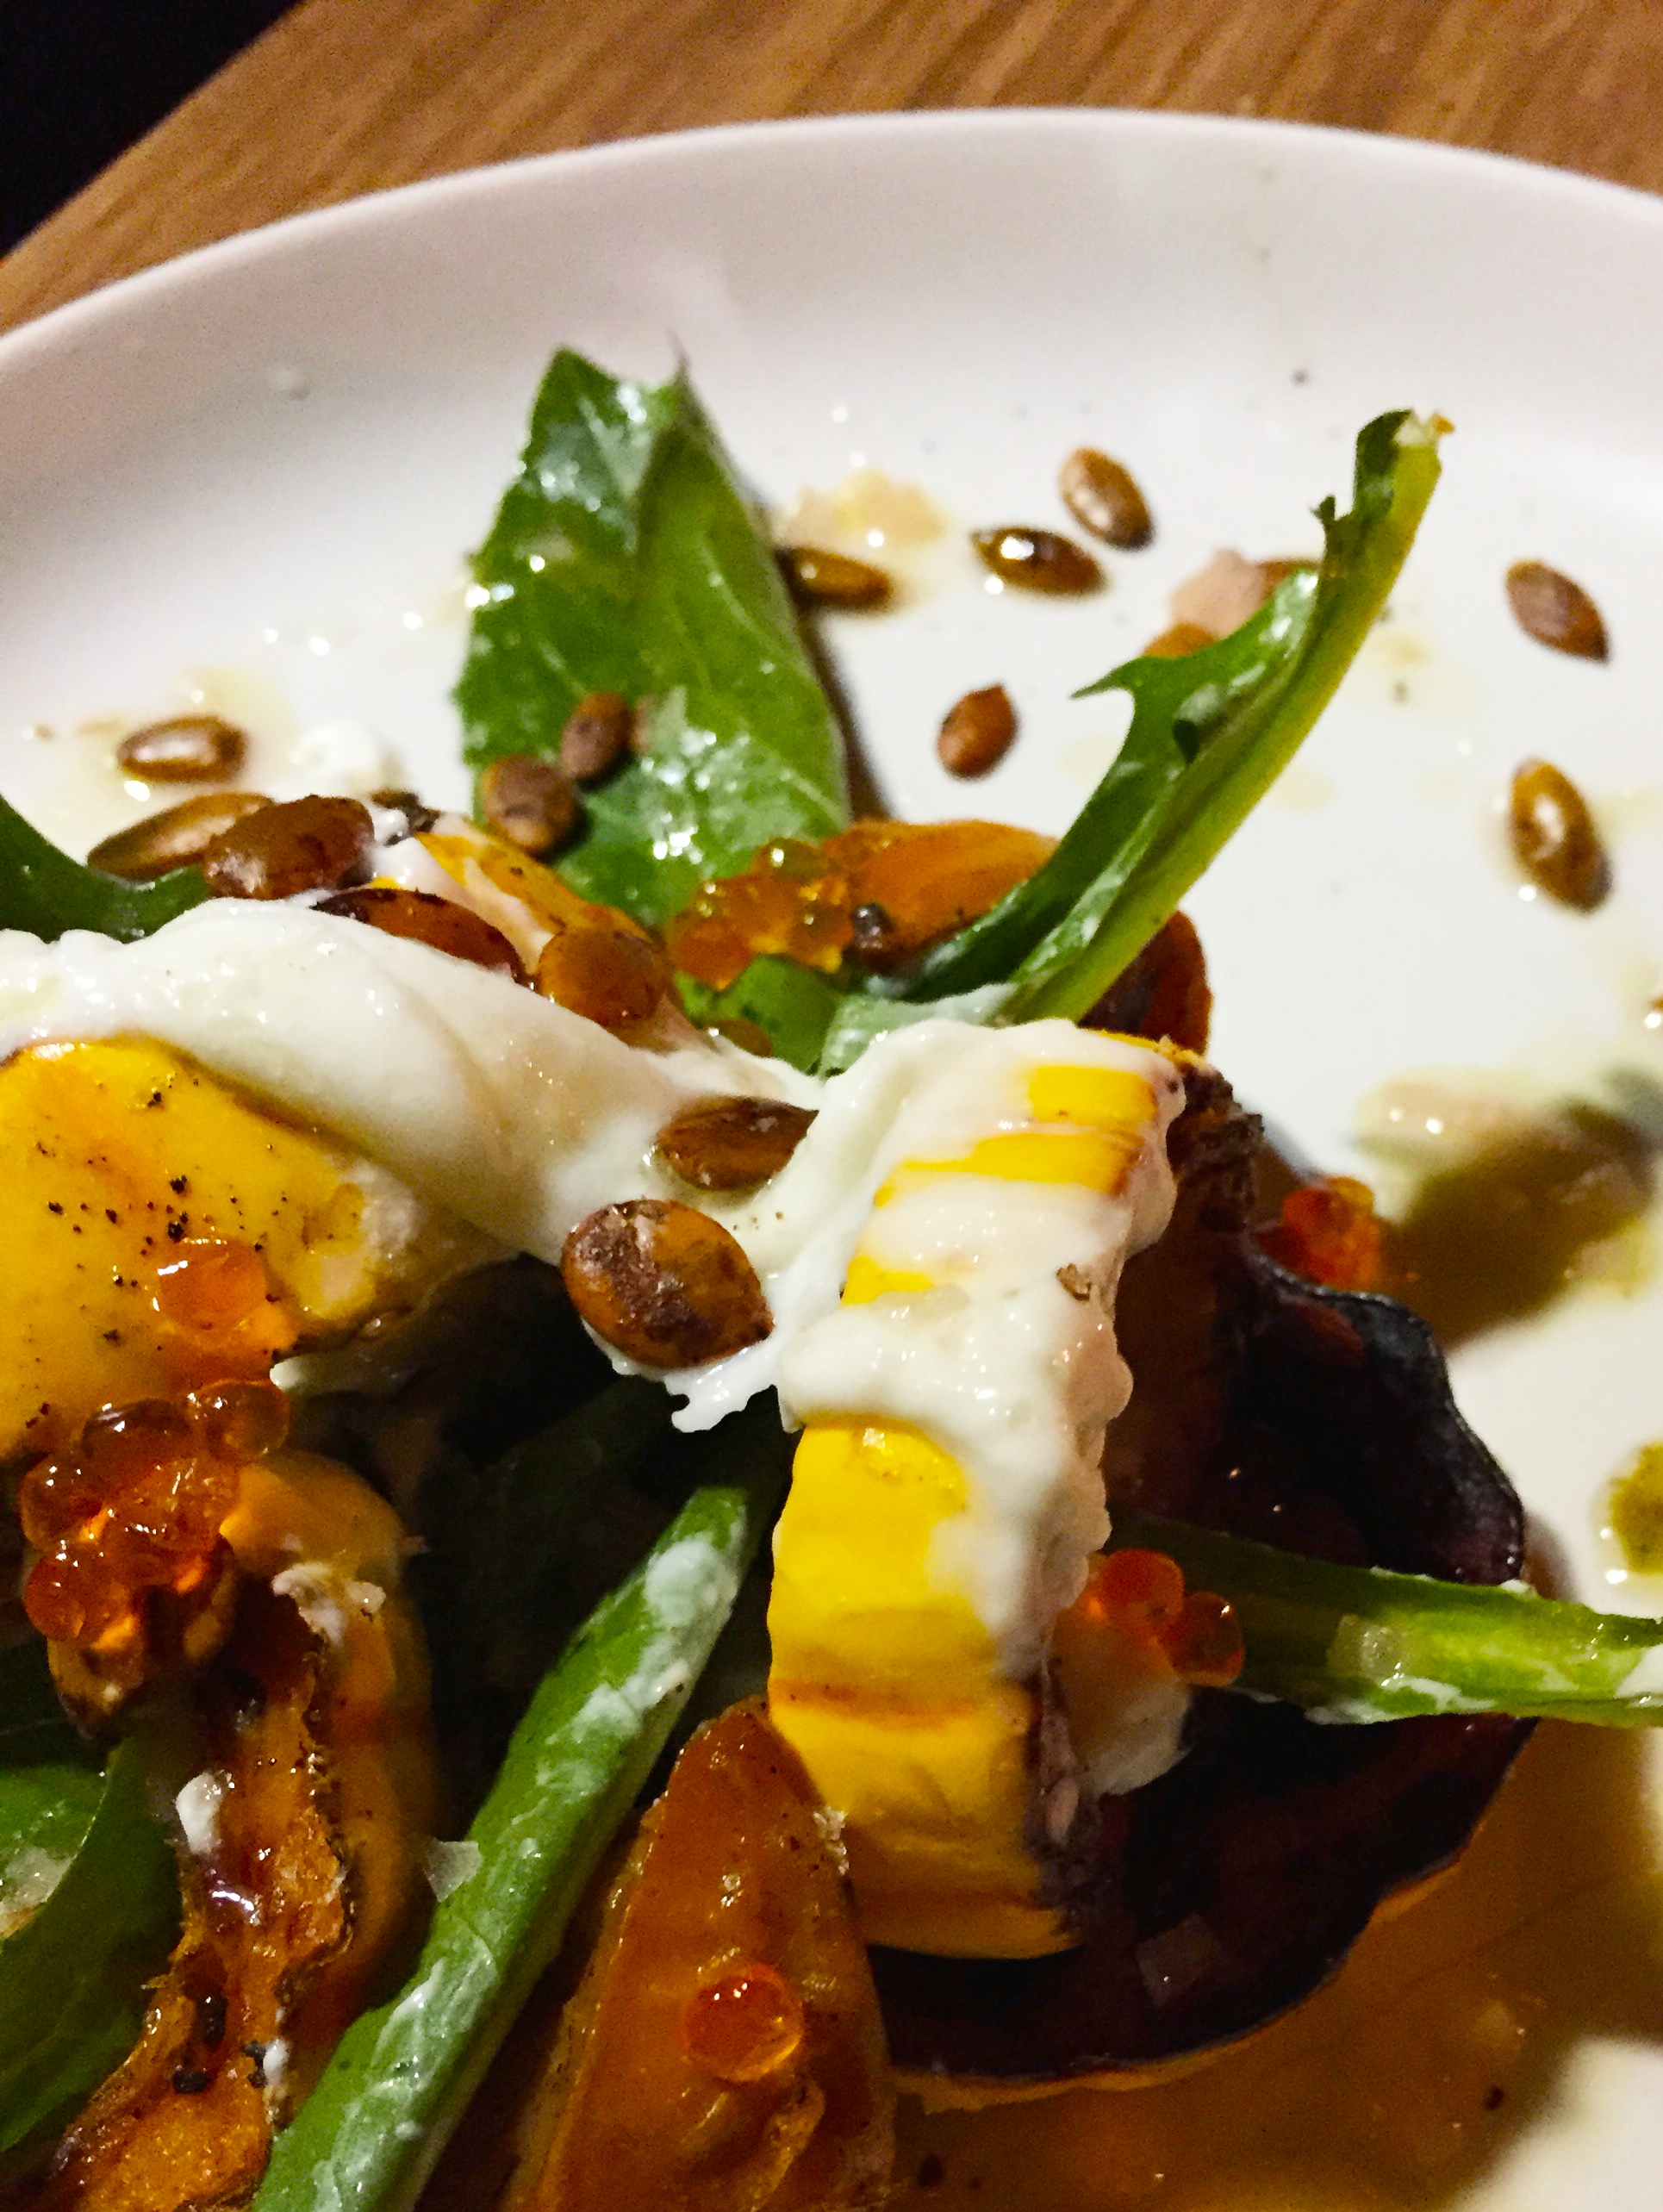 Delicata Squash with persimmon, burrata, smoked trout roe, and roasted squash seeds.